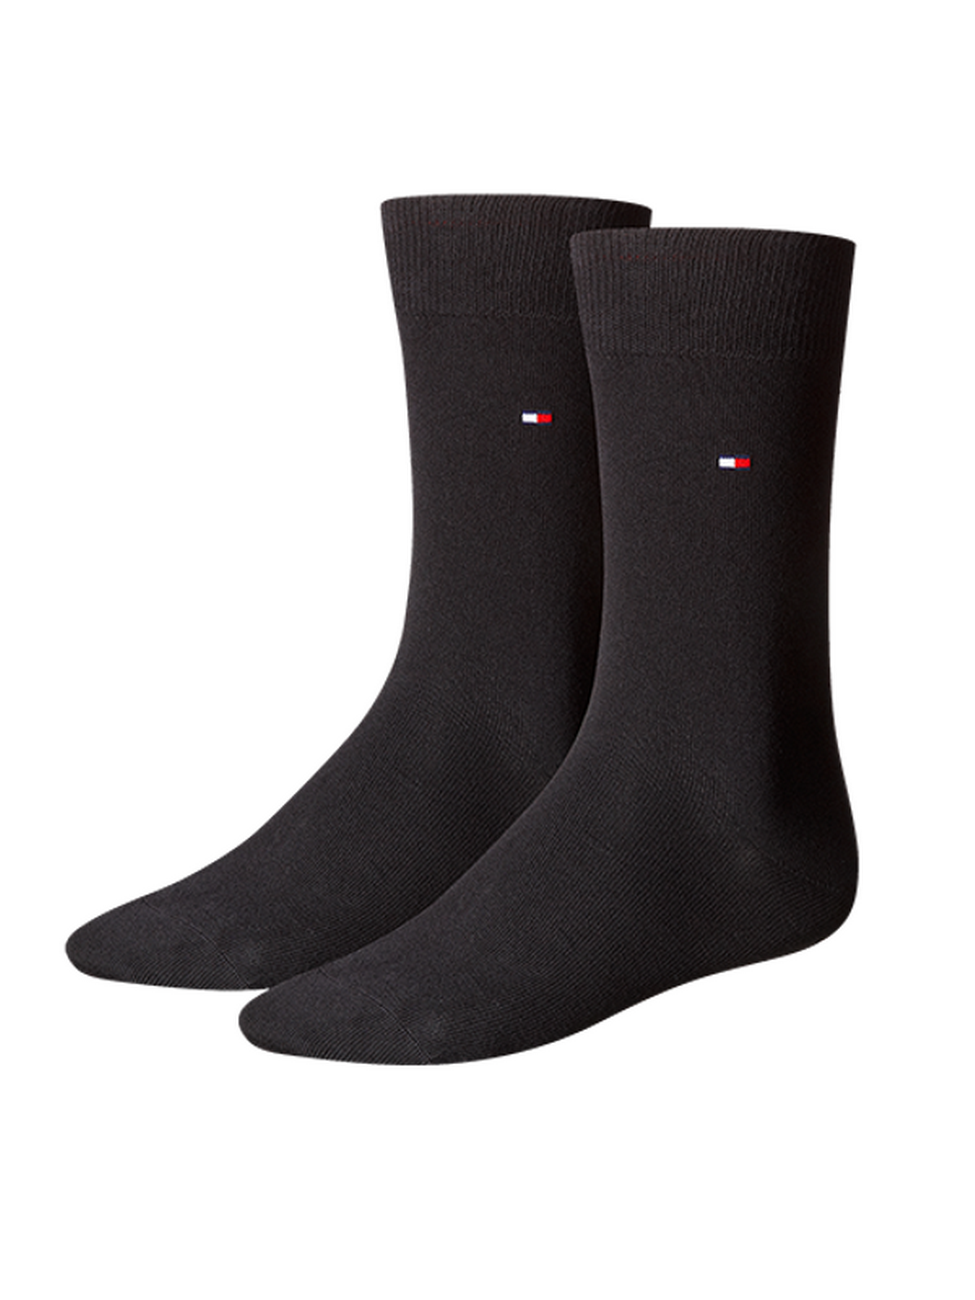 Tommy Hilfiger Herrensocken Classic Business Socken - 2er Pack